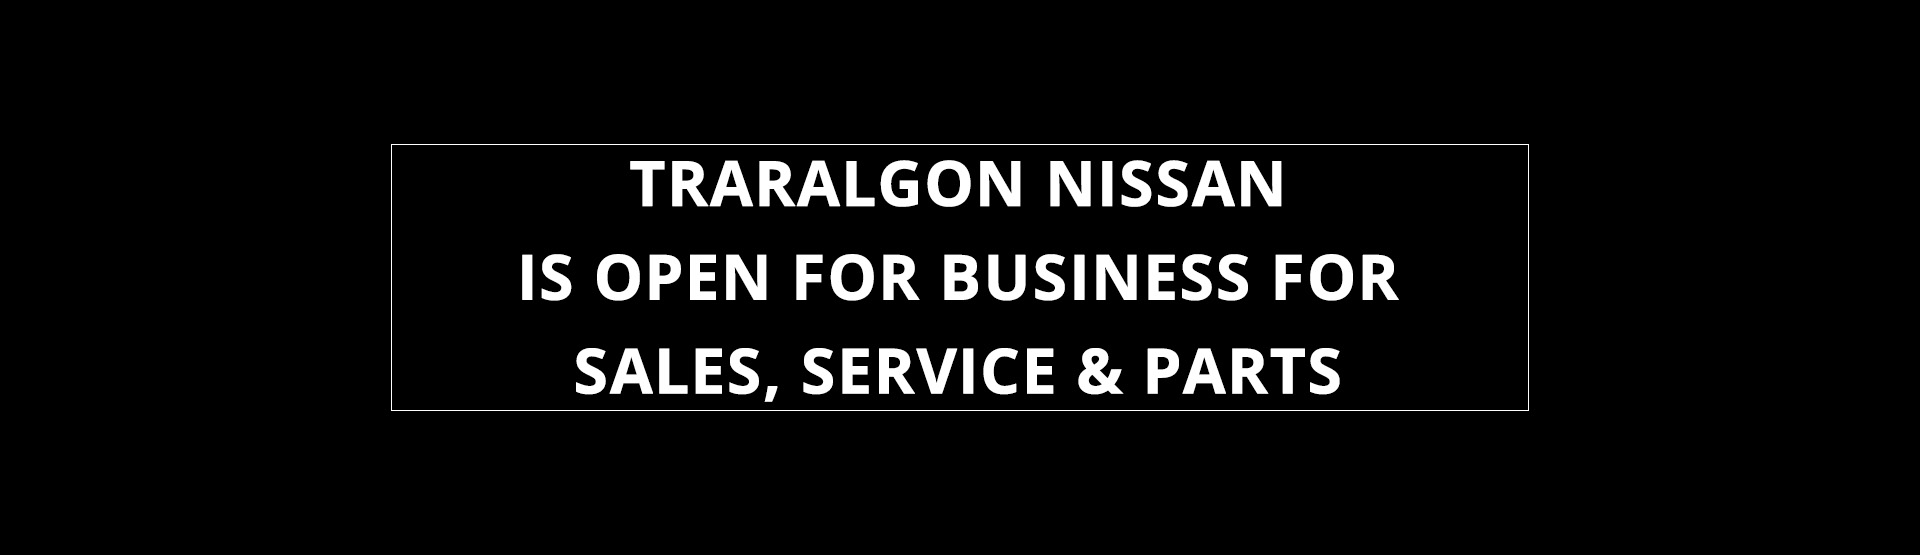 Traralgon Nissan - We're Open For Business